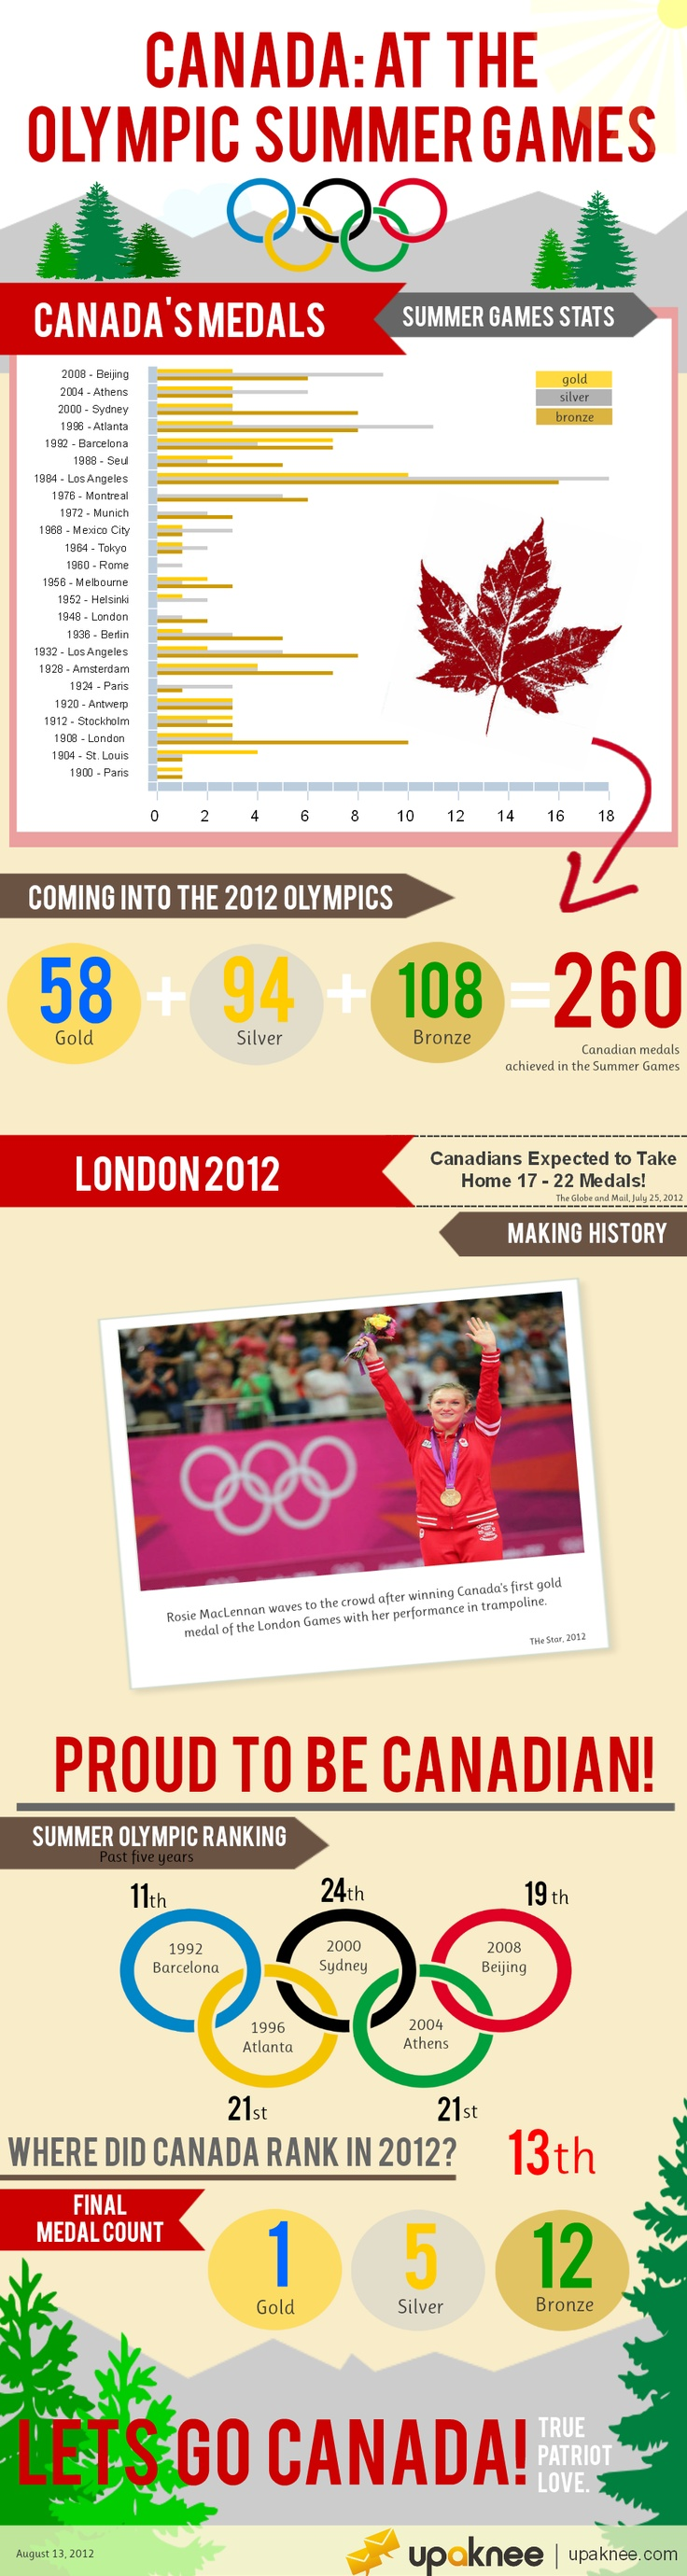 Congratulation to all Canadian Athletes participating in the London 2012 Summer Olympics!